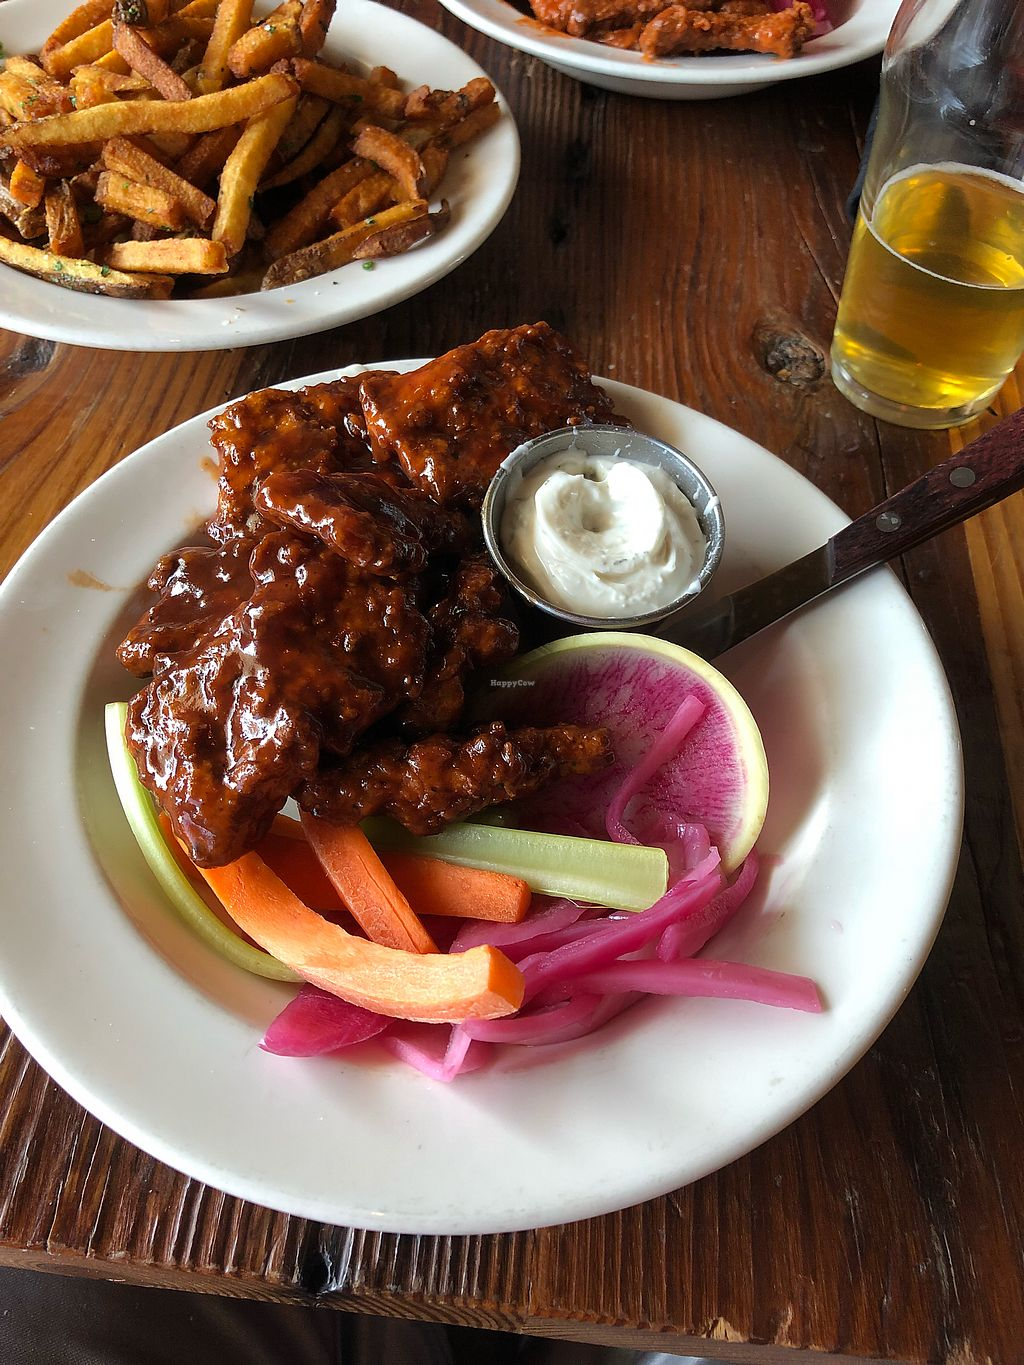 "Photo of Benson Brewery  by <a href=""/members/profile/Jadediana"">Jadediana</a> <br/>Vegan BBQ Seitan Wings with Vegan Ranch  <br/> May 12, 2018  - <a href='/contact/abuse/image/90199/398843'>Report</a>"